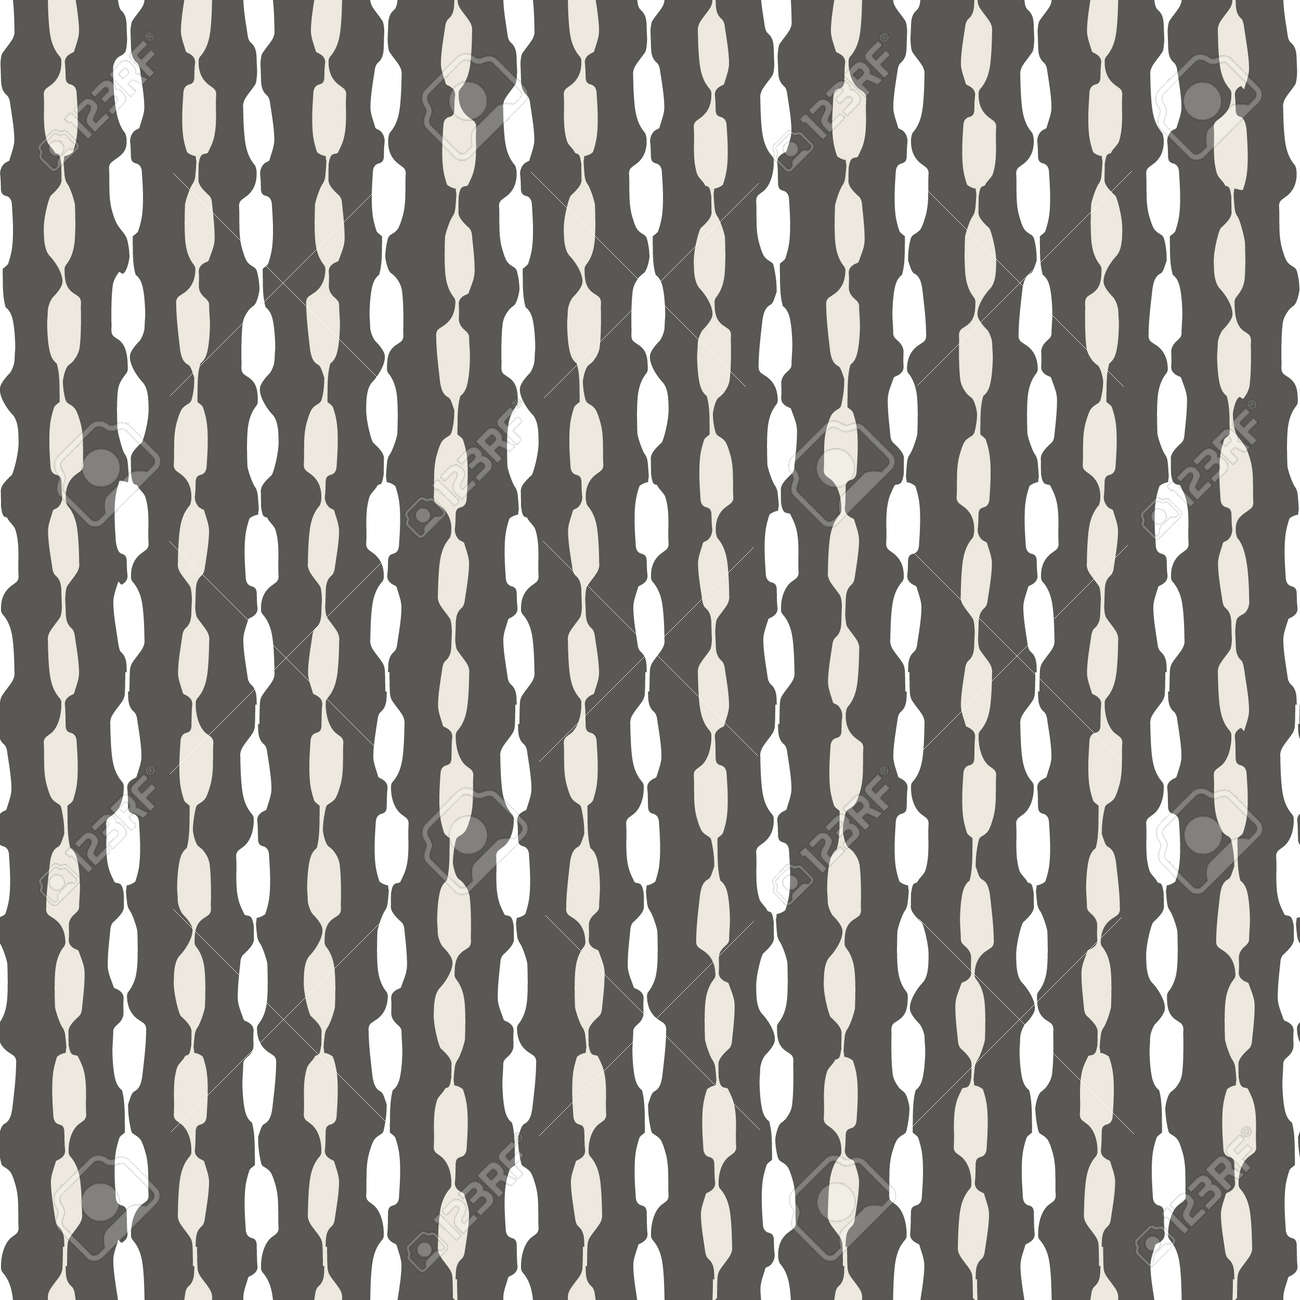 Seamless geometric pattern with hand painted stripes - 164334469